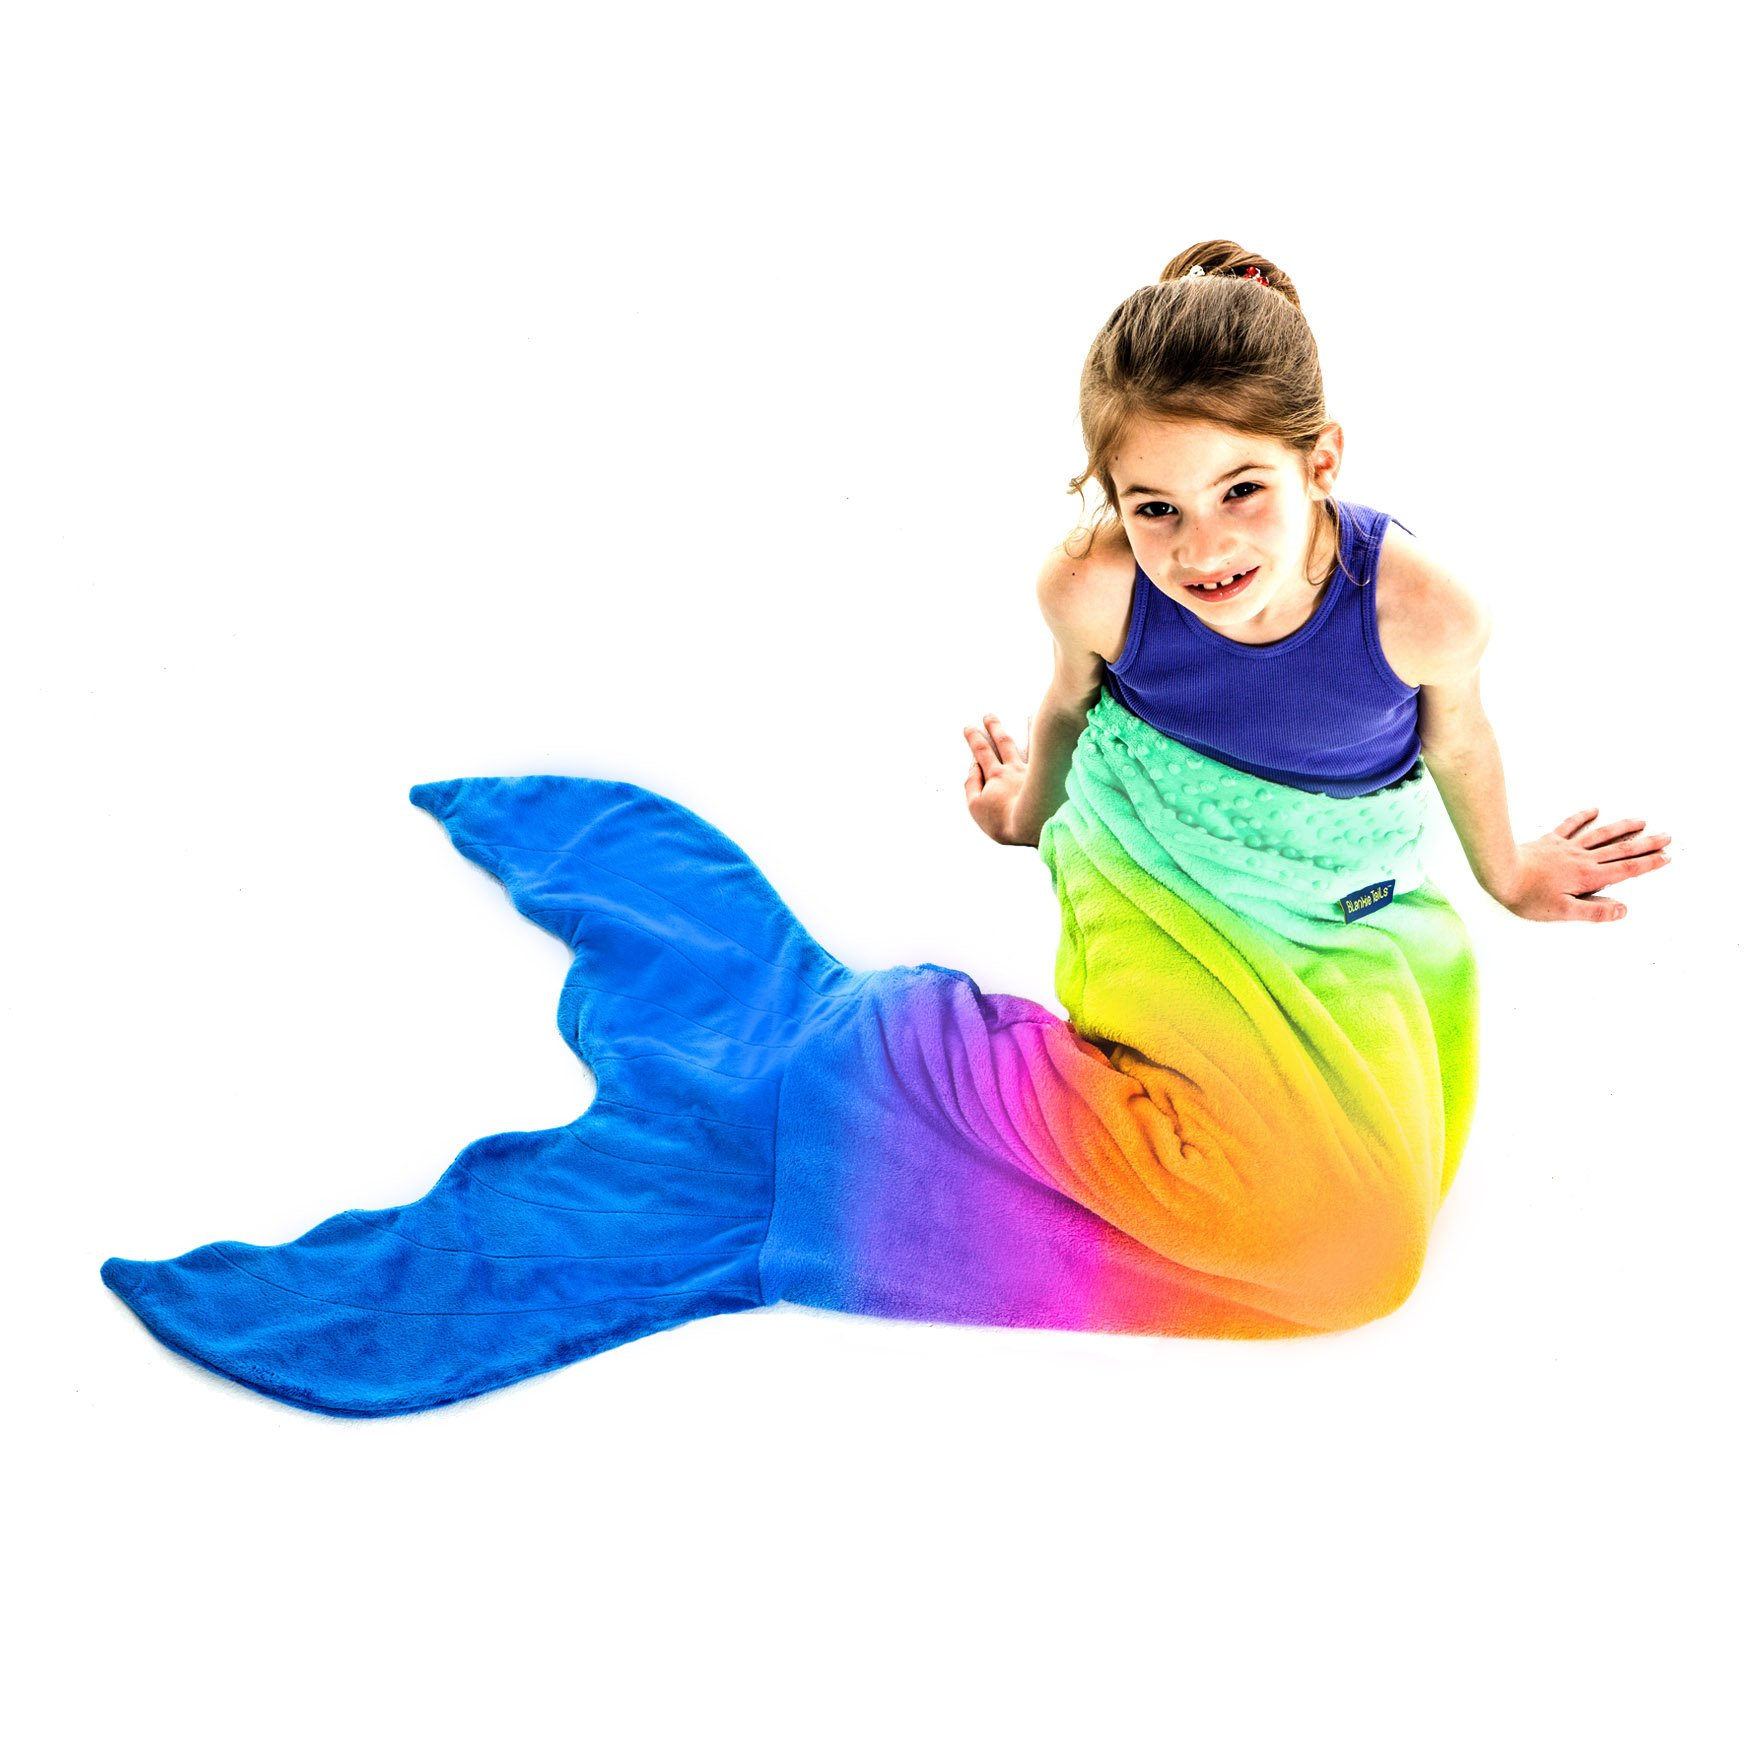 Mermaid Tail Blanket - Gorgeous Rainbow Ombre Design - Double-Sided Minky Fleece Mermaid Tail Sized for Kids - Climb Inside This Cozy Wearable Blanket by Blankie Tails